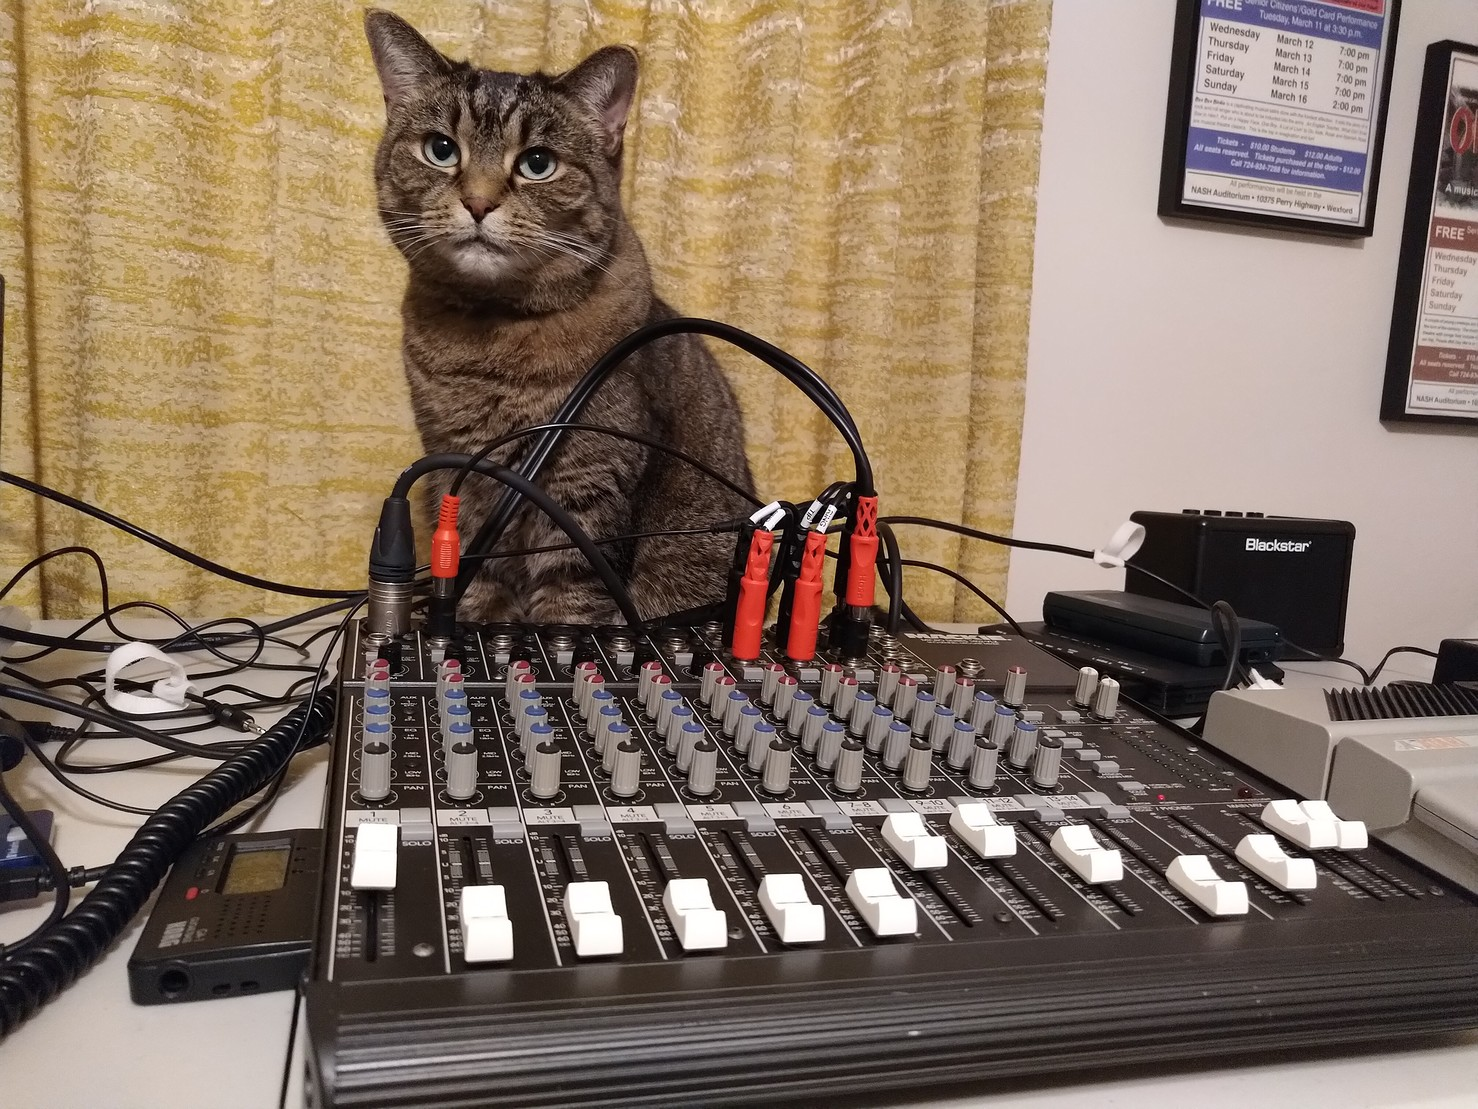 Brown tabby cat sitting behind a sound console.